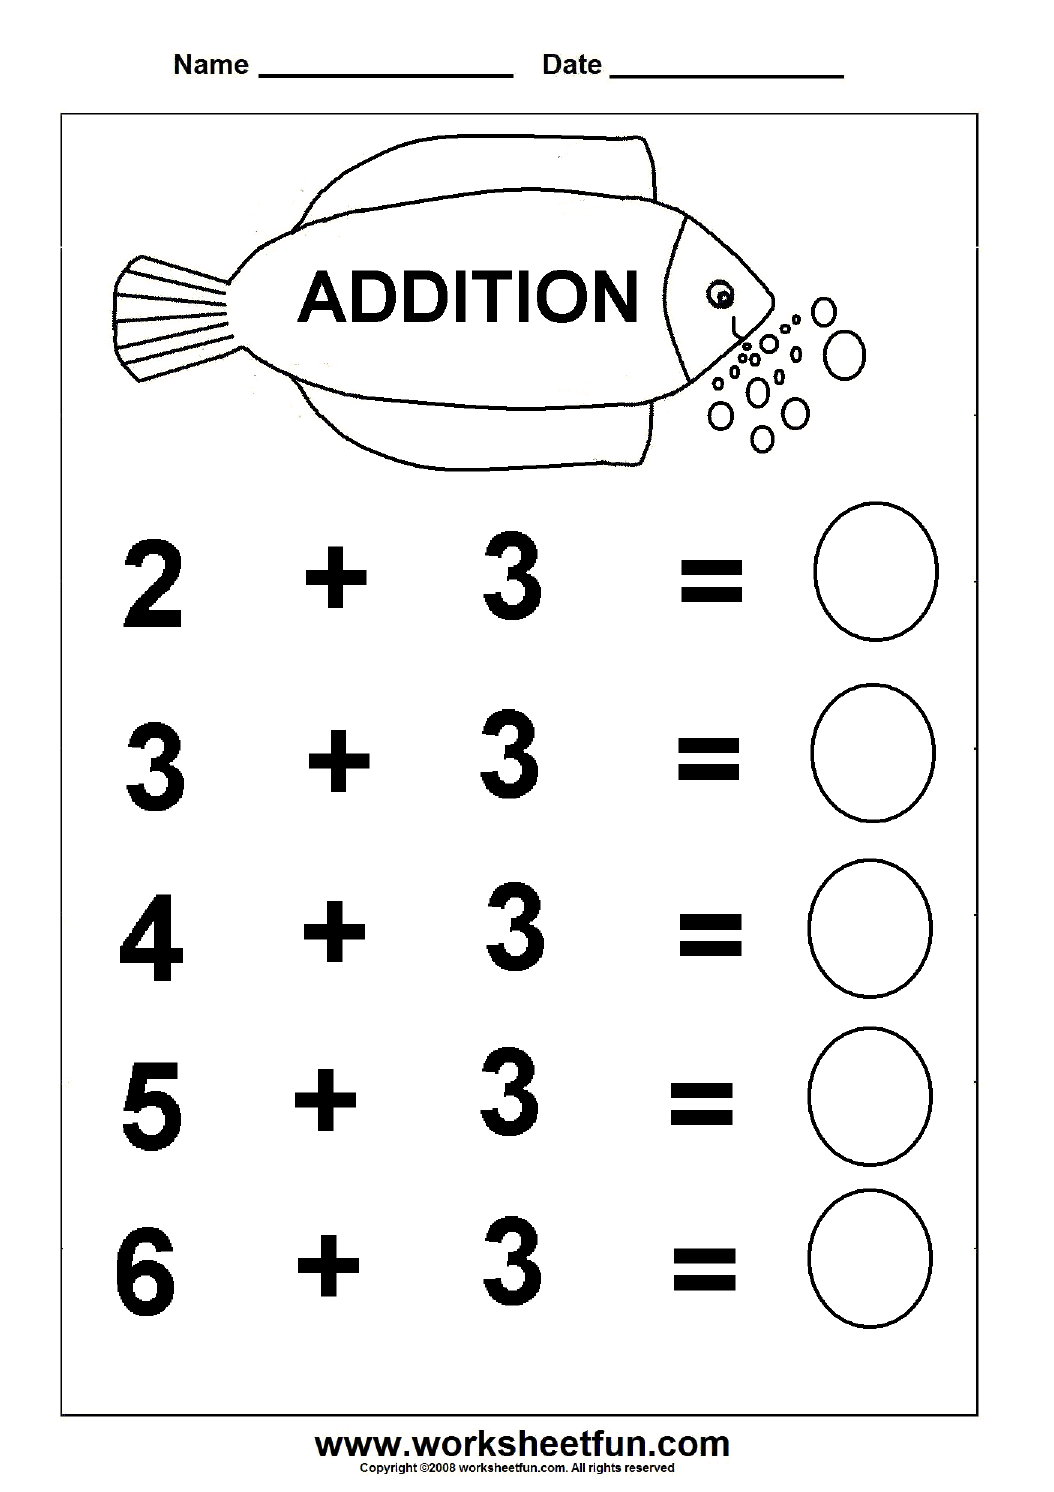 Free Printable Adding Worksheets : Beginner addition kindergarten worksheets